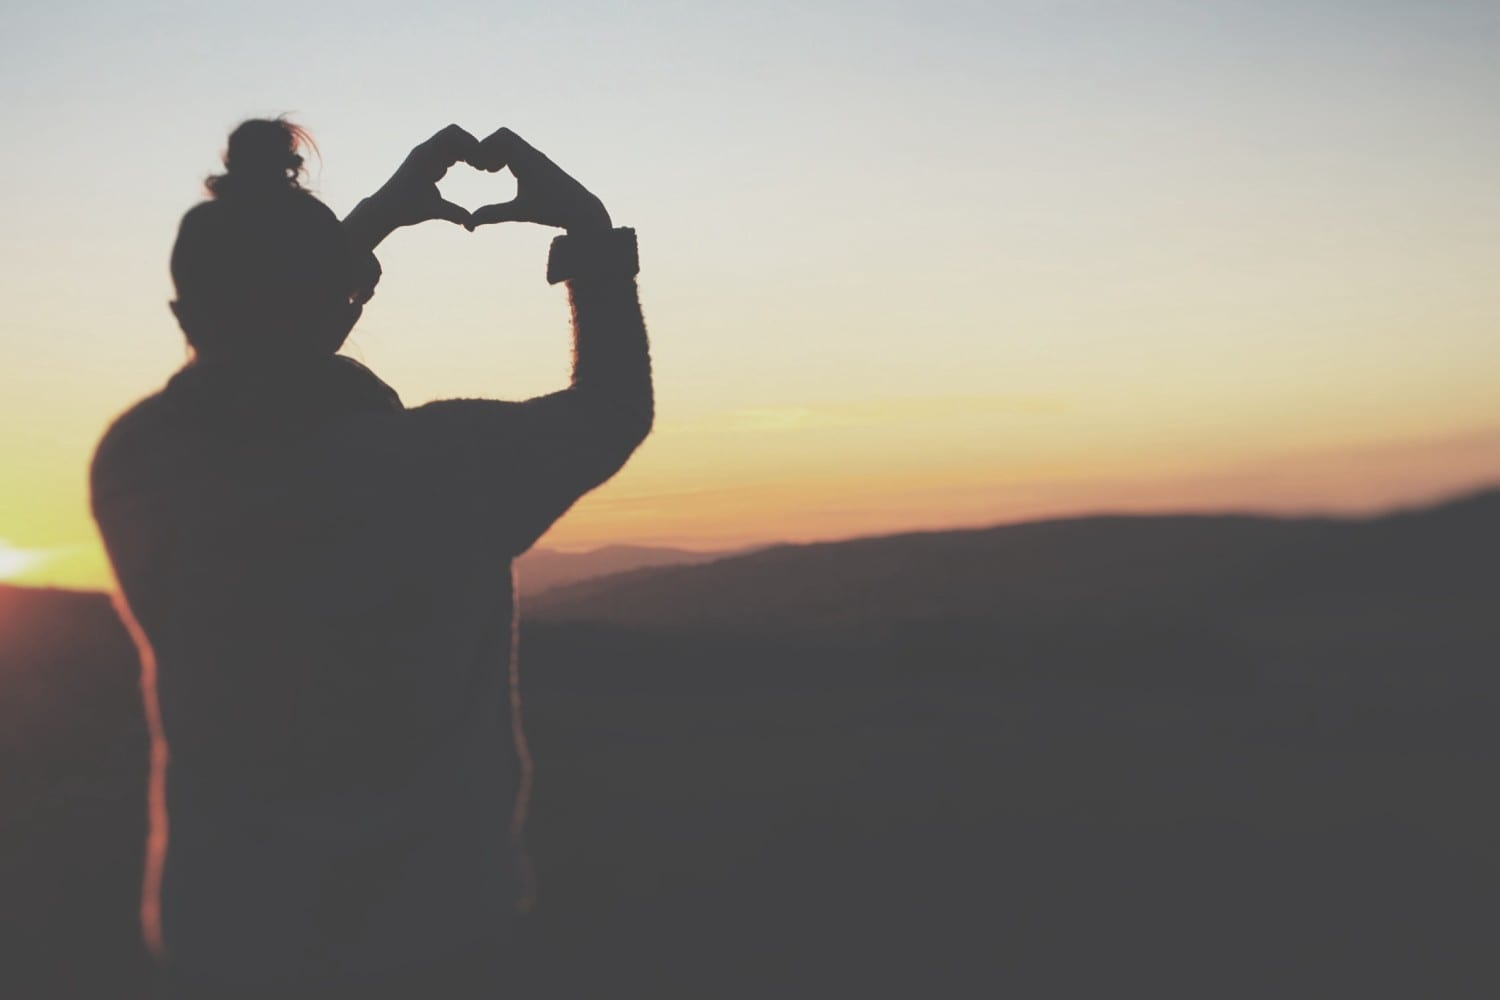 a girl watching the sunset making a heart shape with her hands